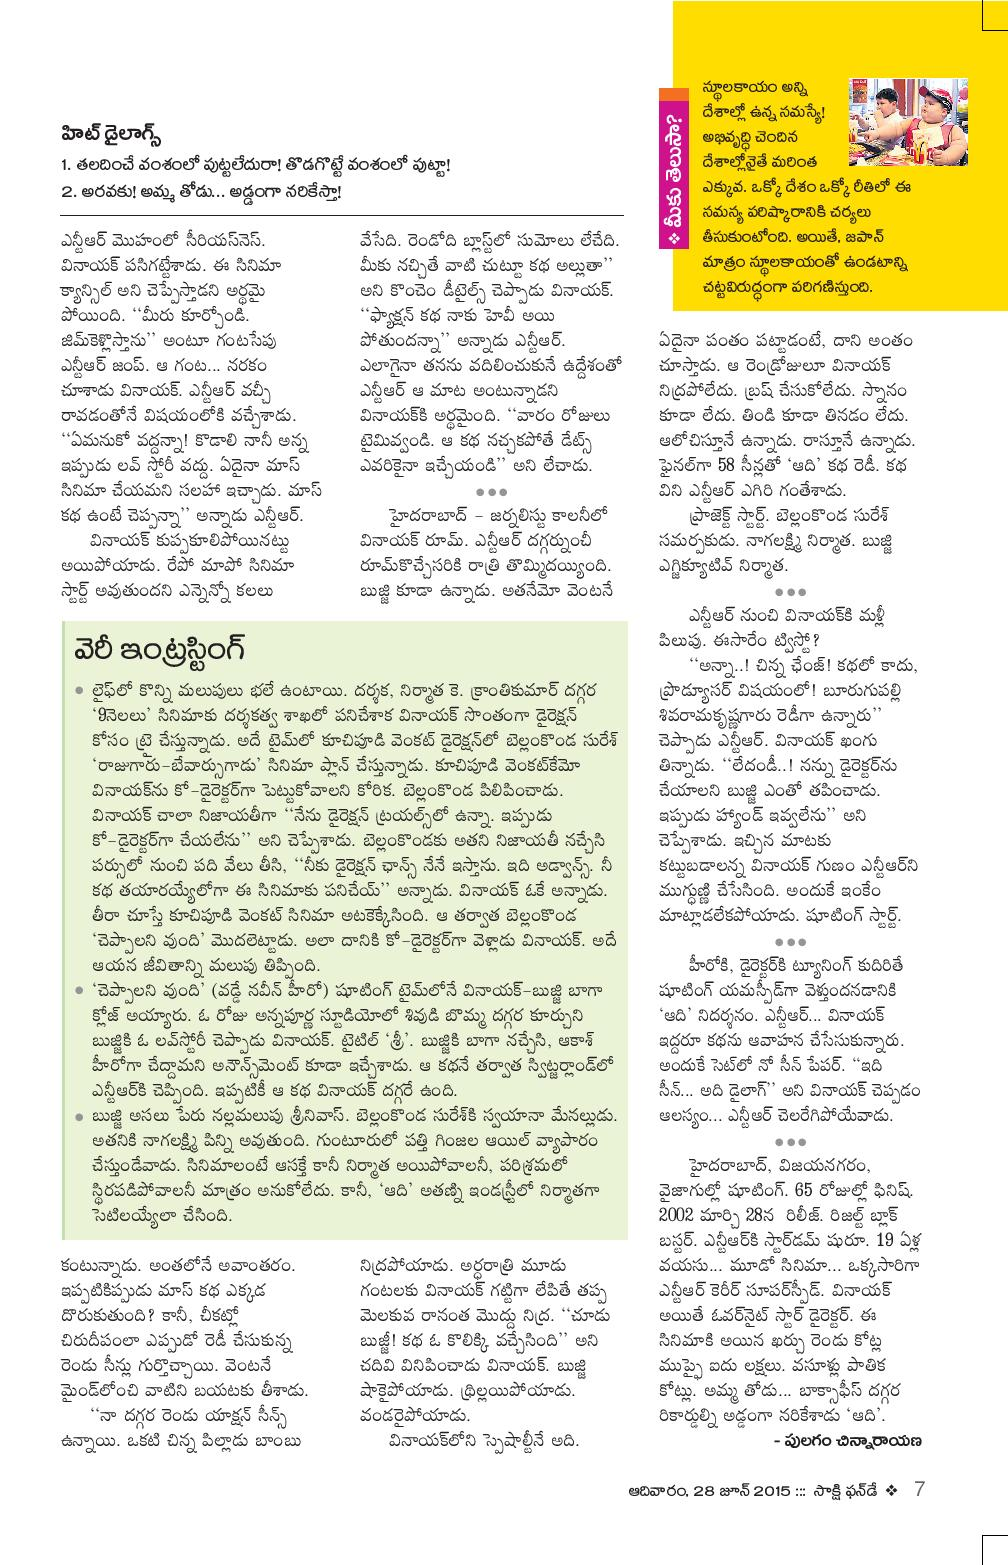 Cinema Venuka Story-Aadi_Funday (28-06-2015)-page-002